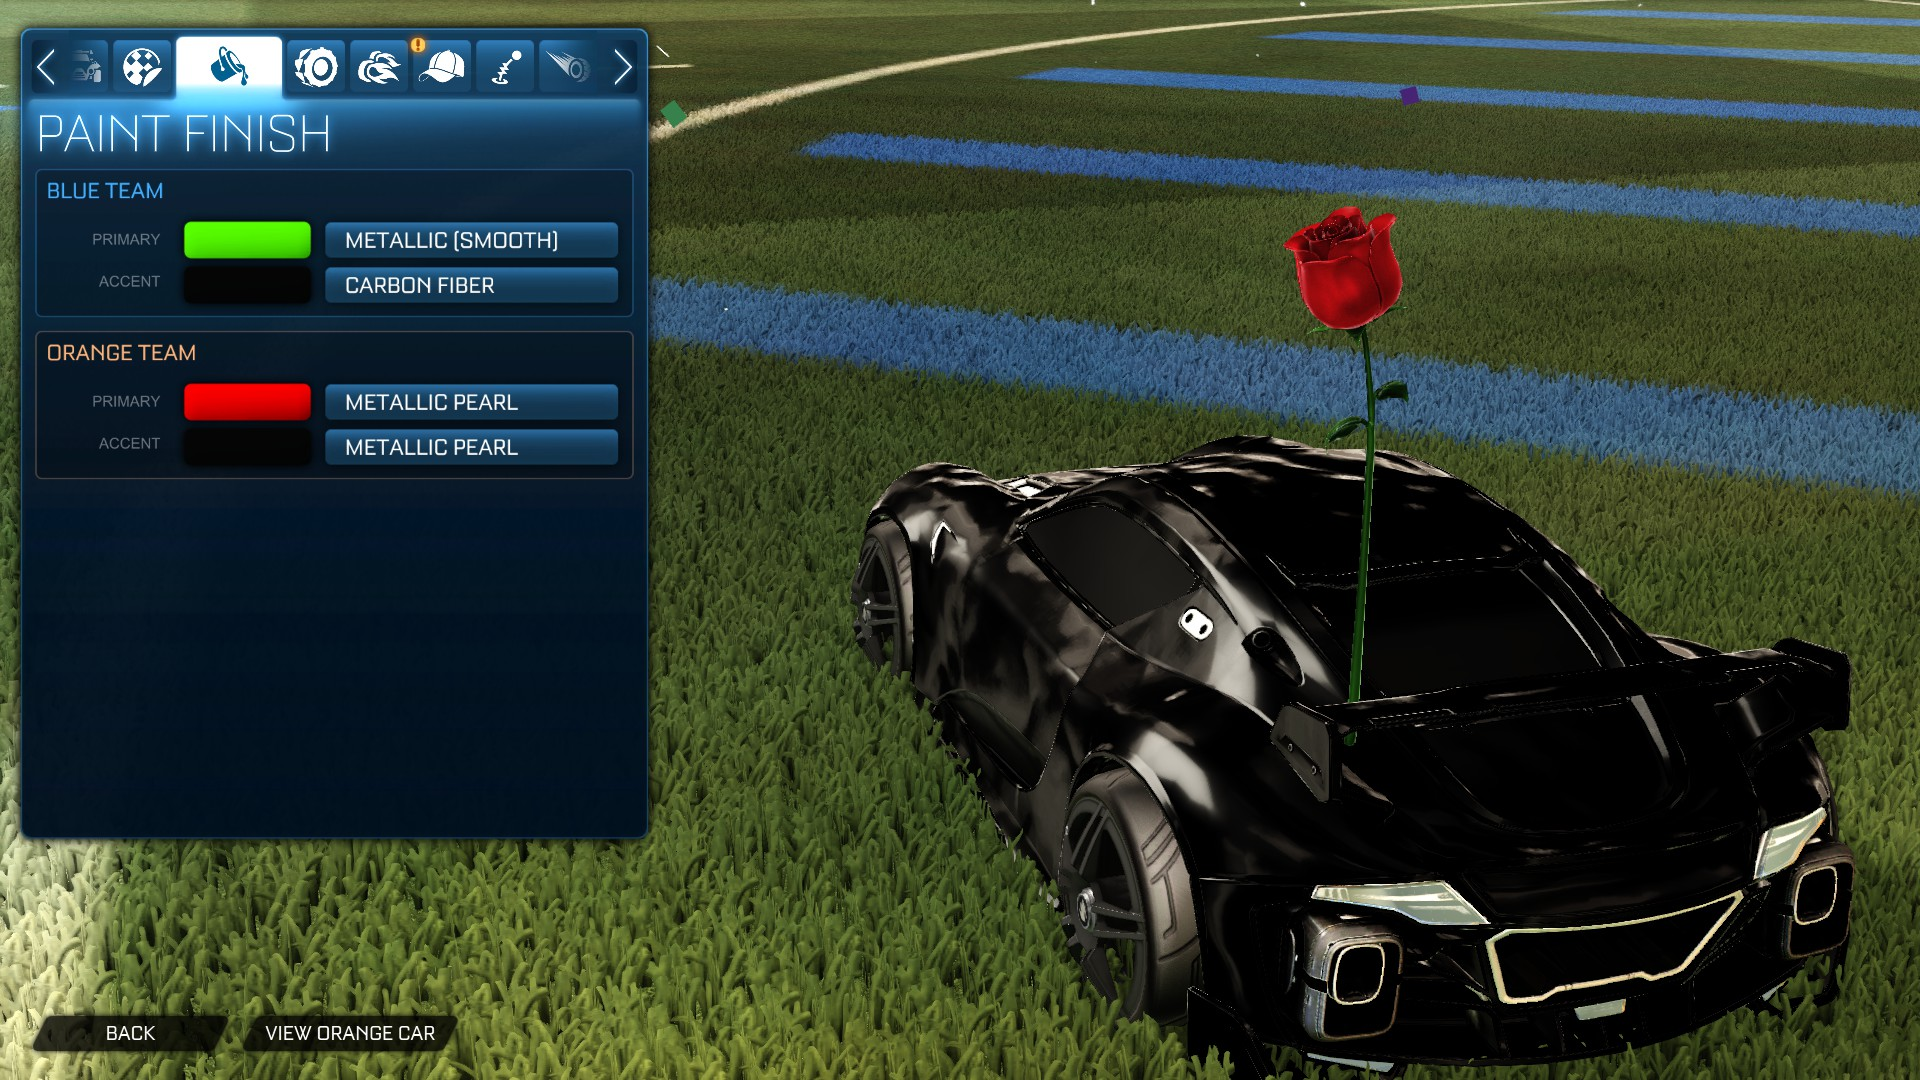 Variable Decals for all cars [Paints car in decal color/black/white]